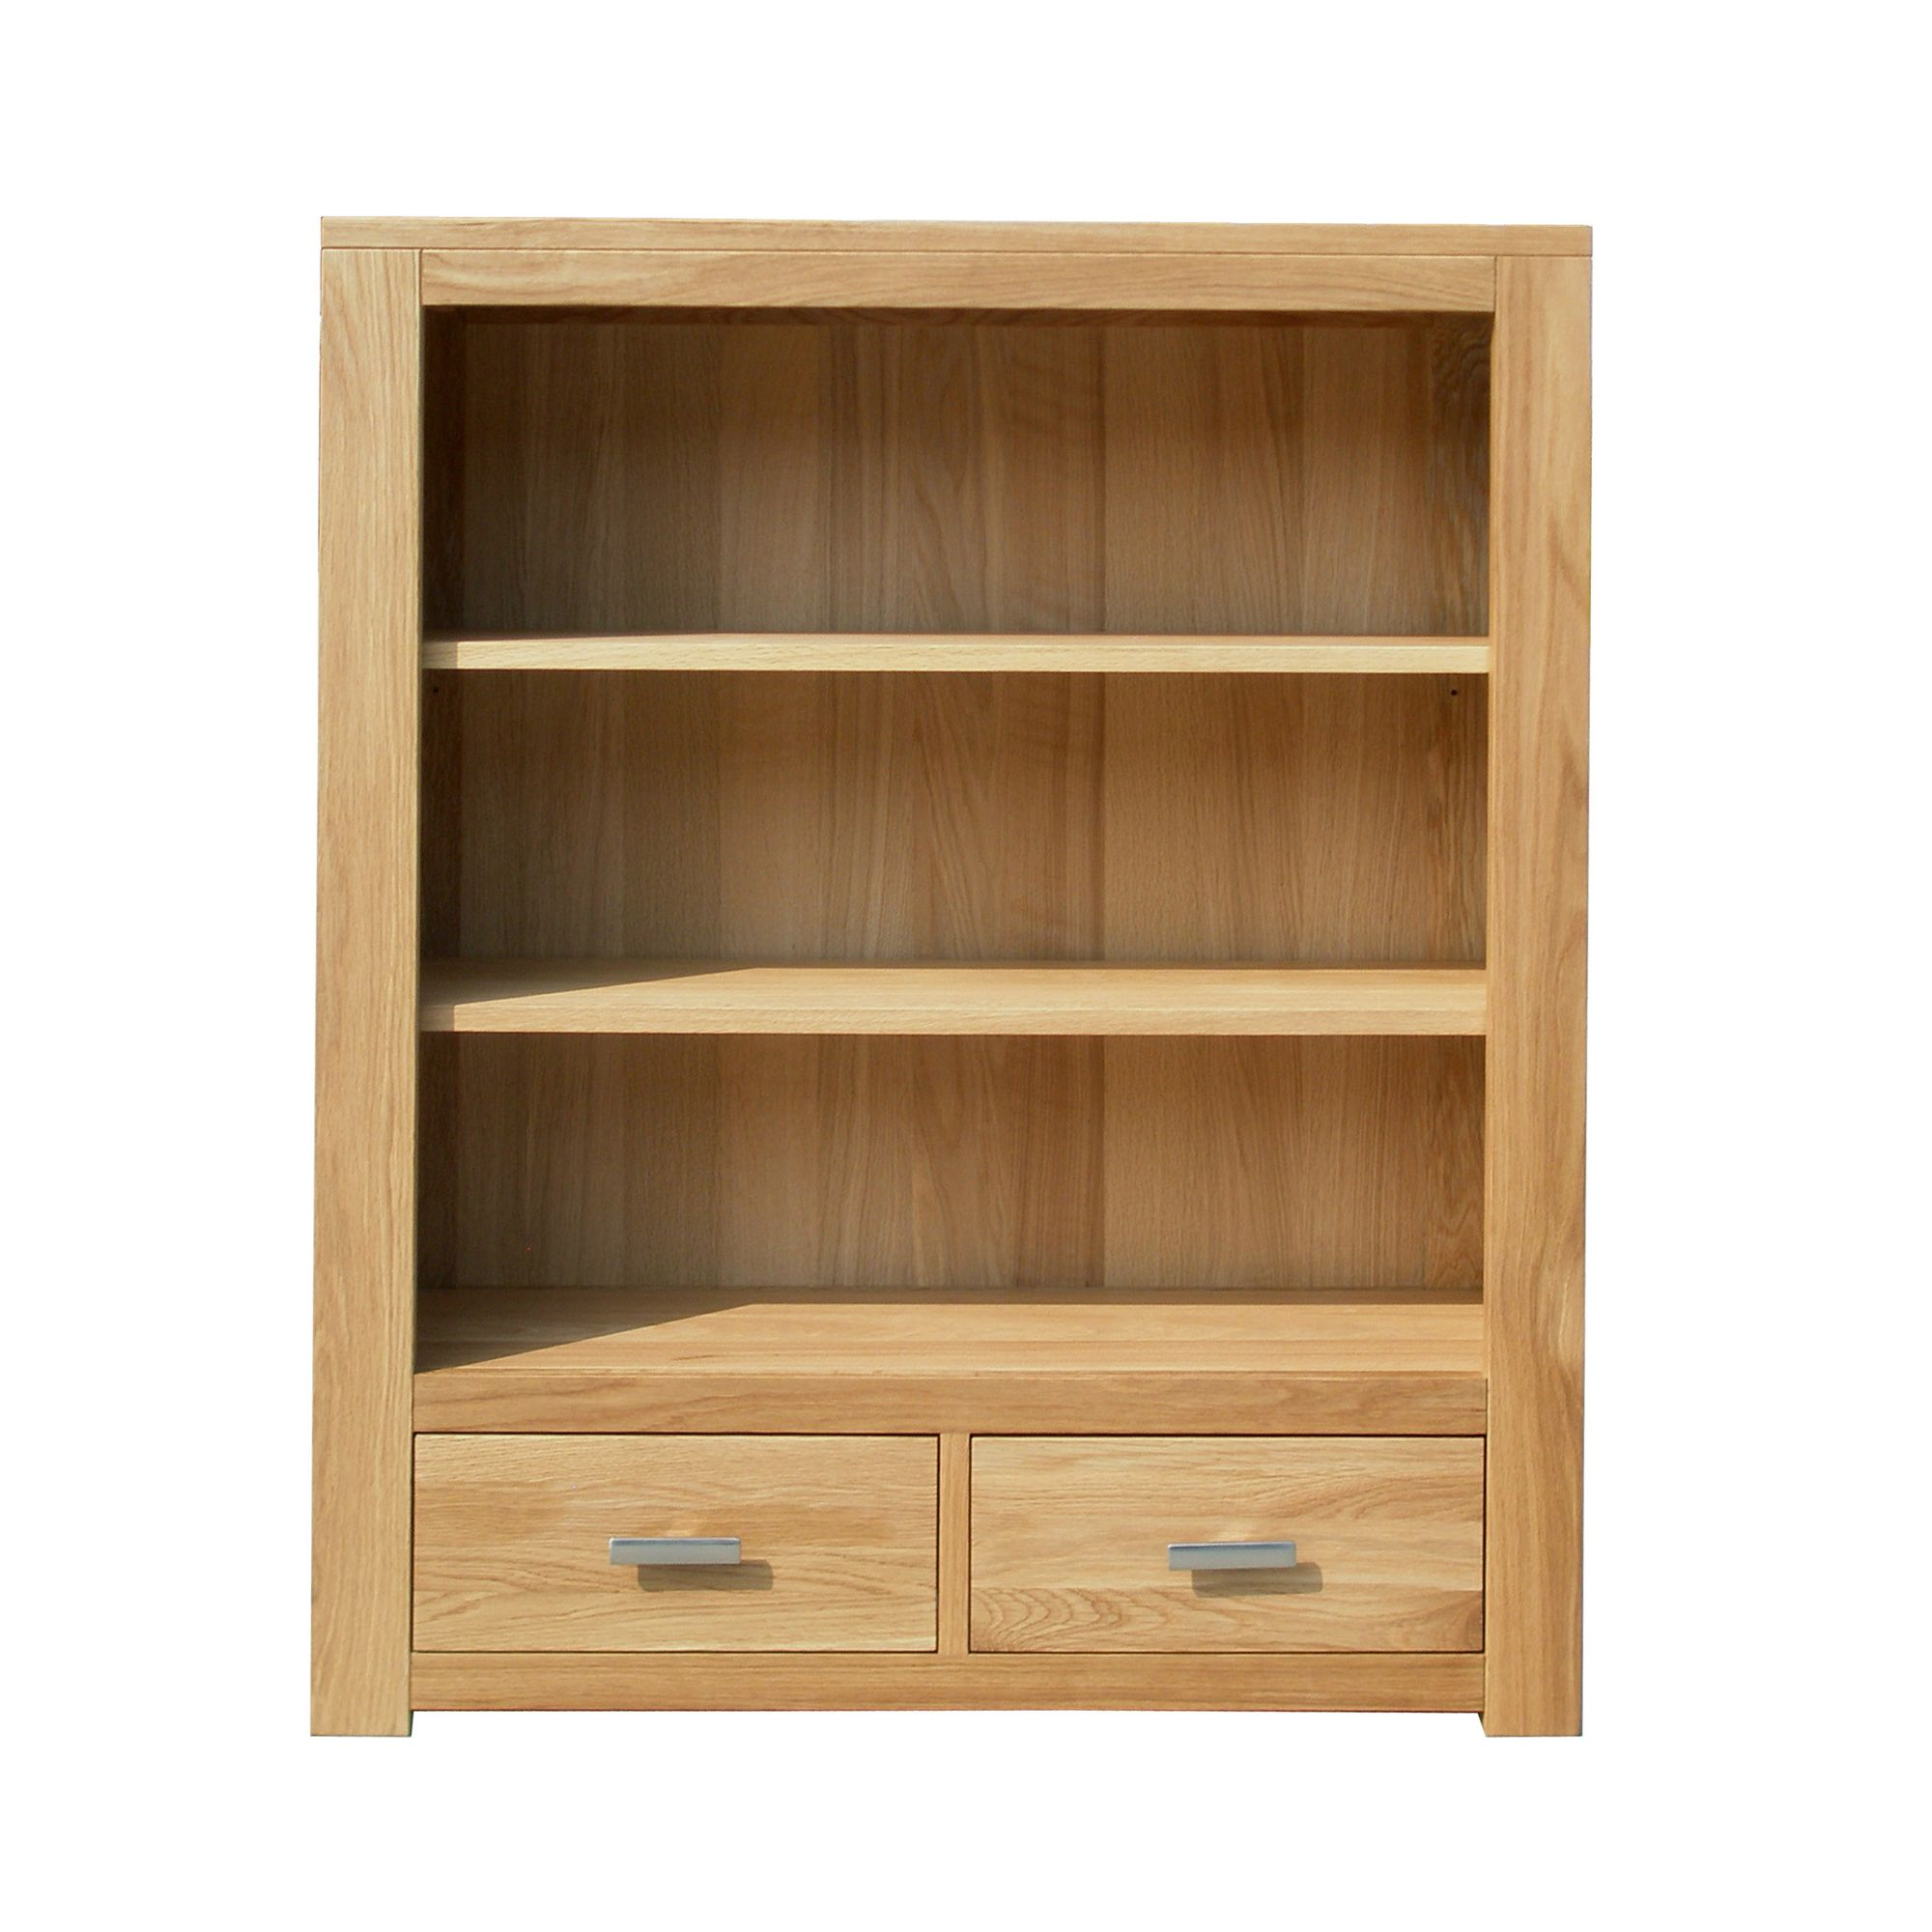 Home Zone Furniture Churchill Oak 2010 Low Book Case in Natural Oak at Tesco Direct